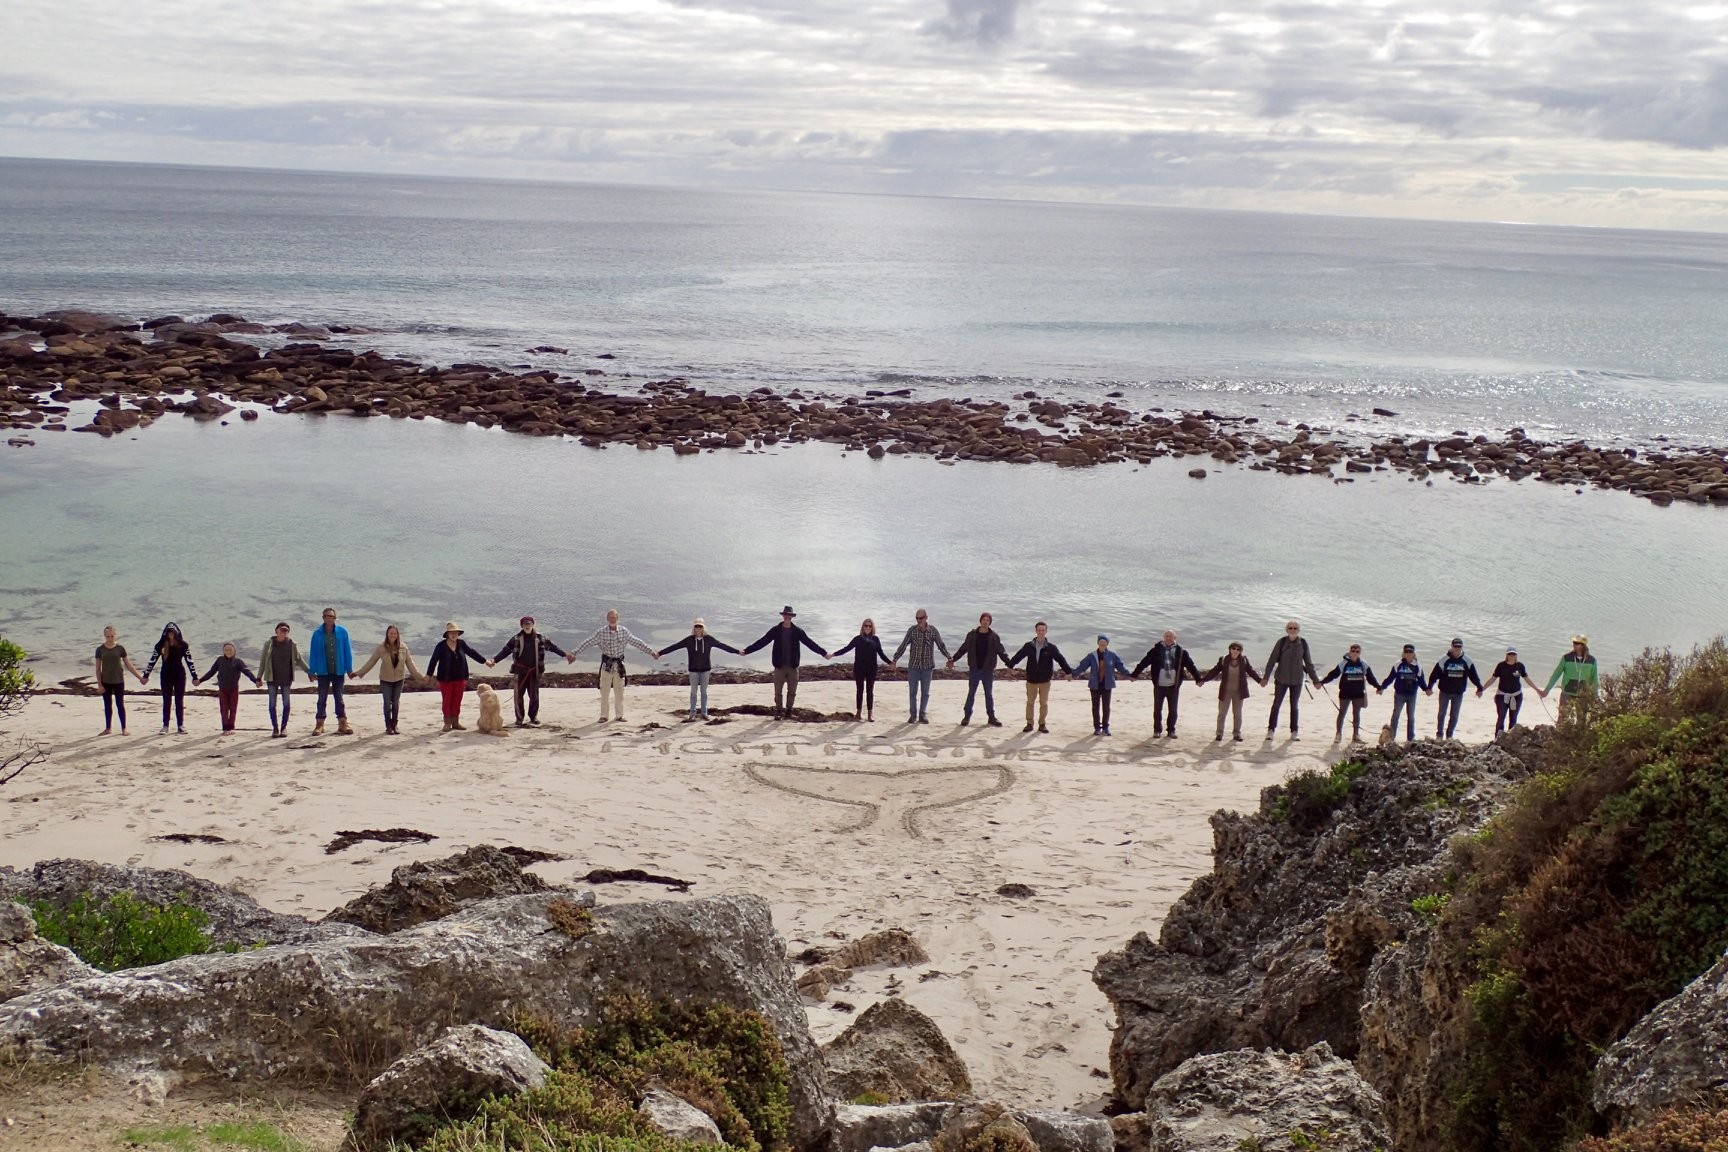 Opponents of offshore drilling join 'Hands Across the Sand' on 30 Florida beaches